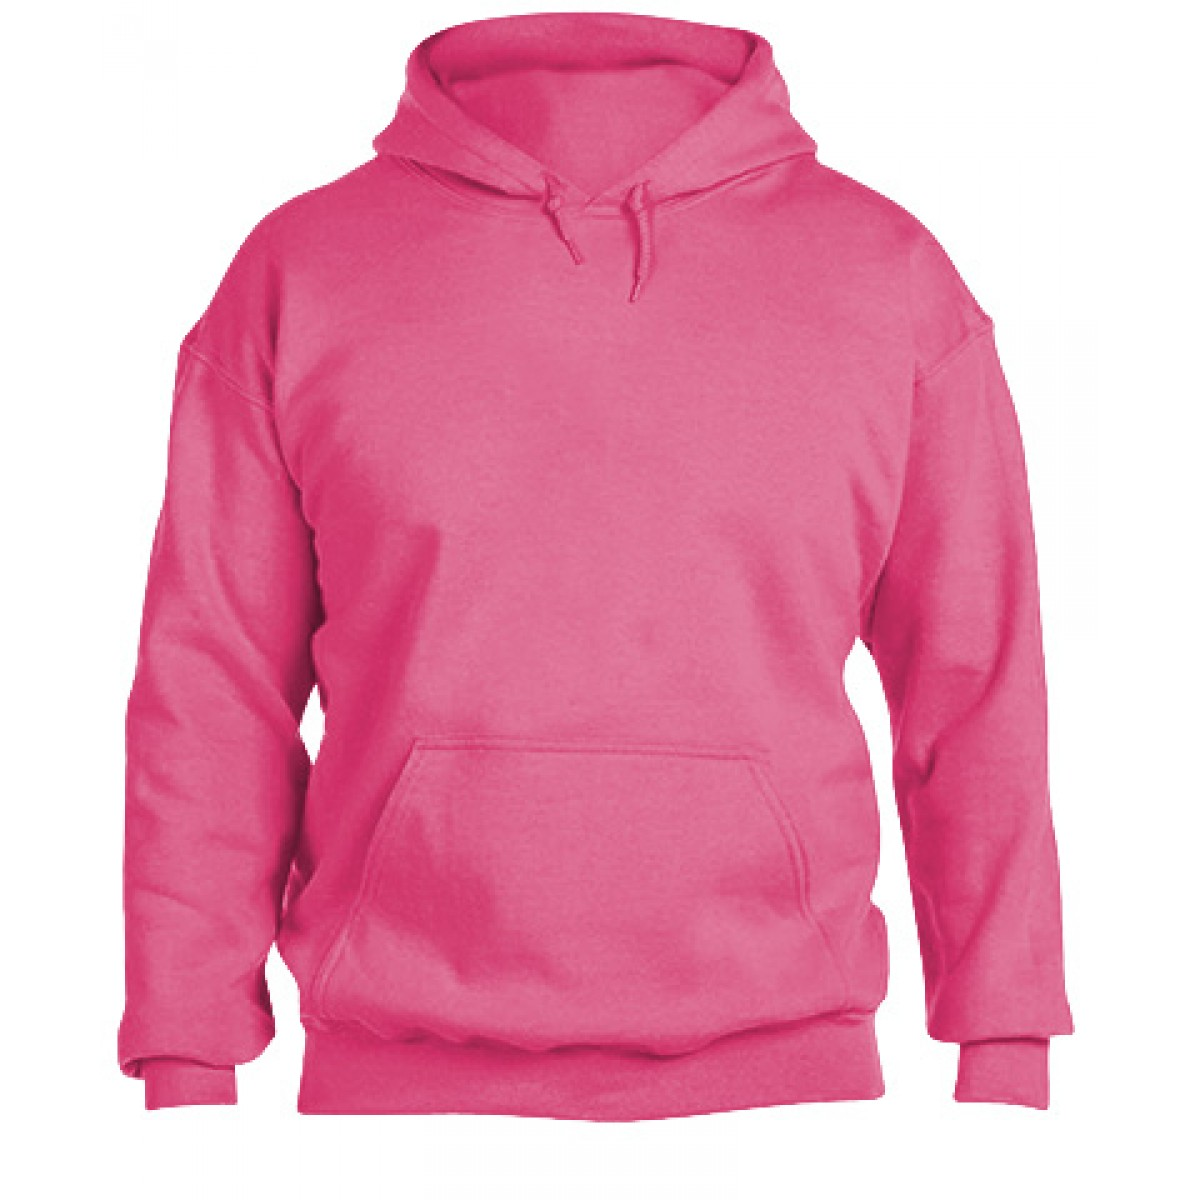 Hooded Sweatshirt 50/50 Heavy Blend Safety Pink